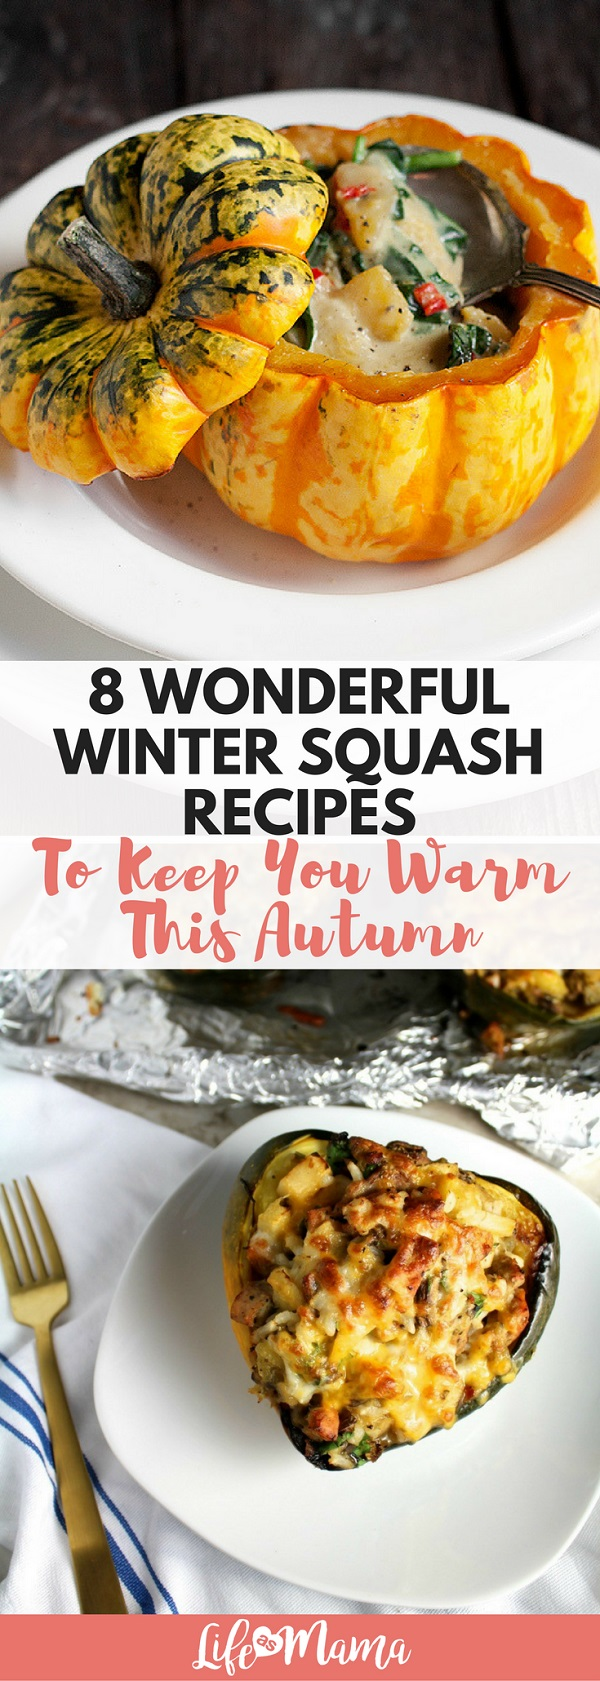 Here are some of the best winter squash recipes that you can make this fall and winter!